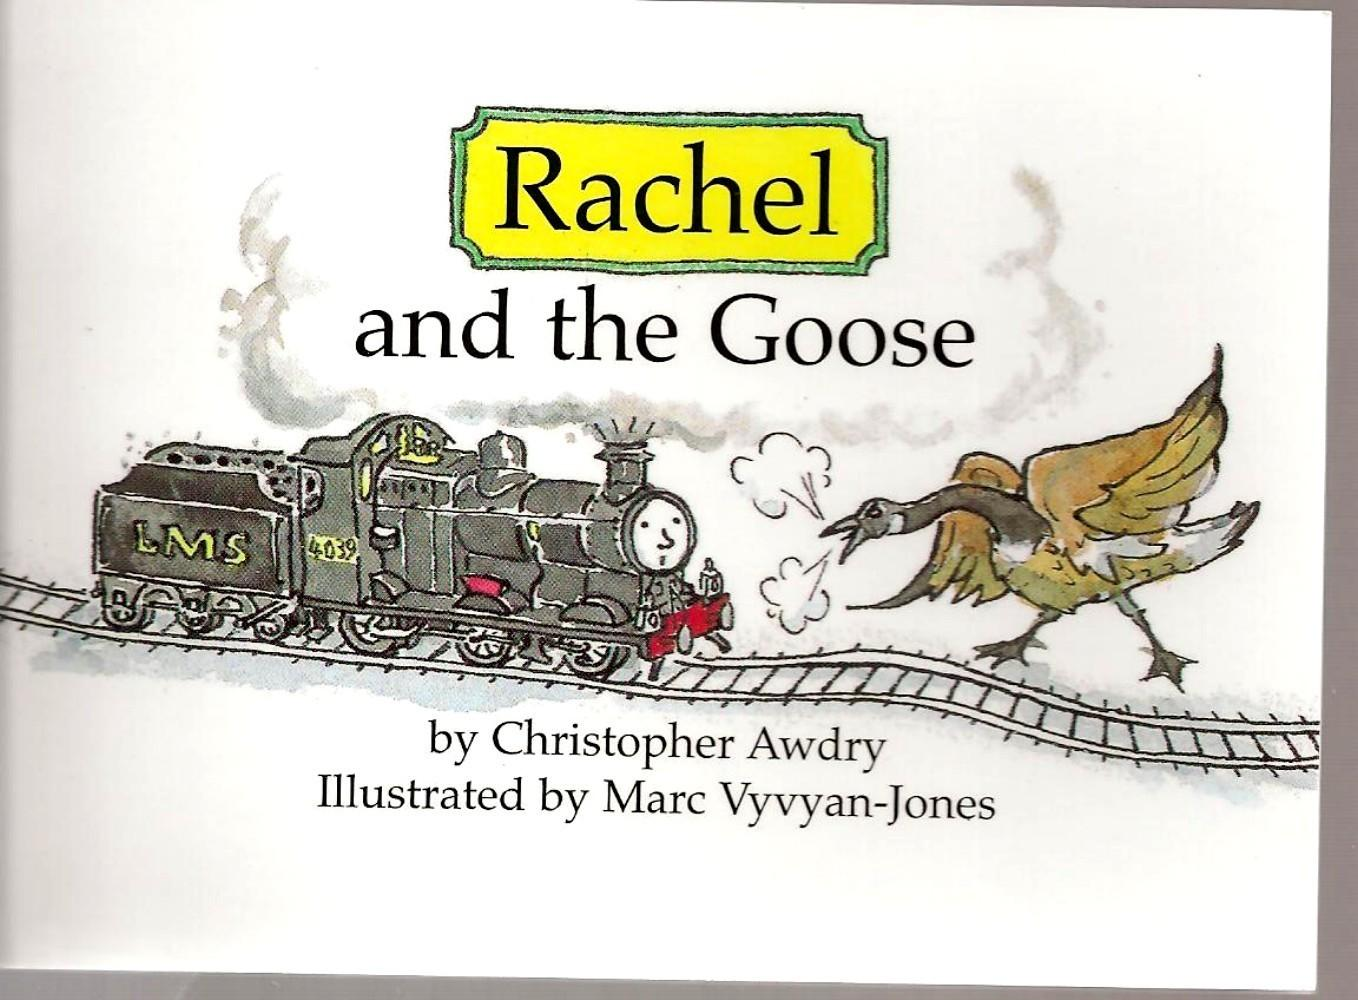 Rachel and the Goose * SIGNED COPY * (